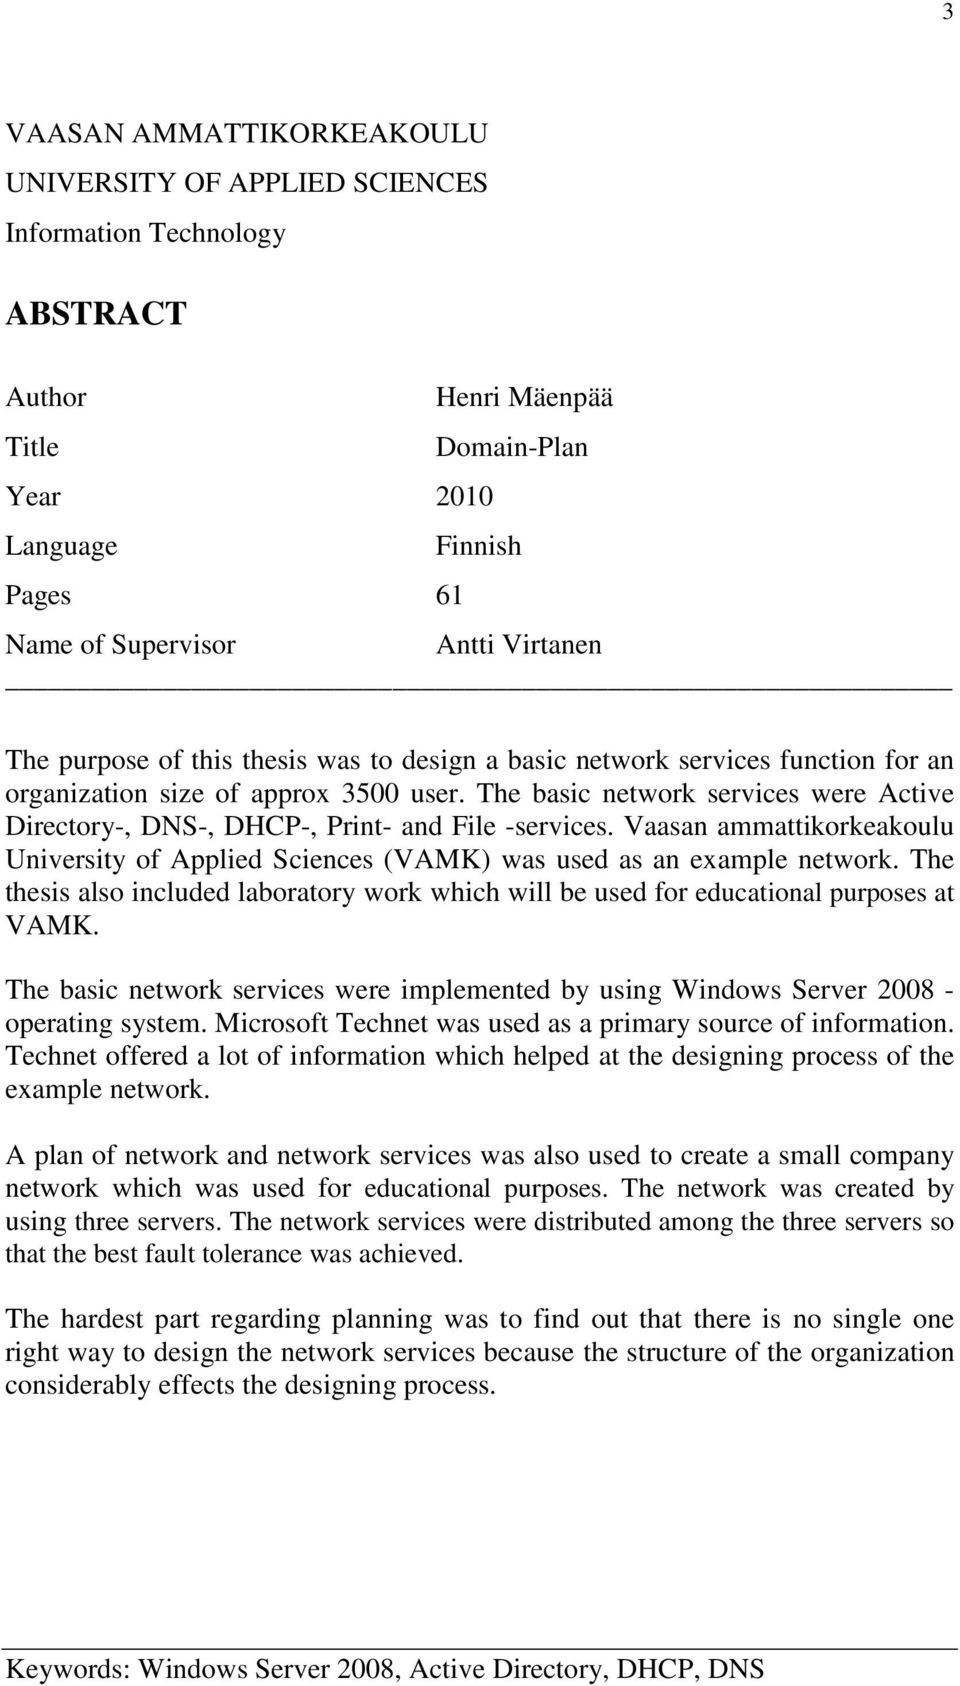 The basic network services were Active Directory-, DNS-, DHCP-, Print- and File -services. Vaasan ammattikorkeakoulu University of Applied Sciences (VAMK) was used as an example network.